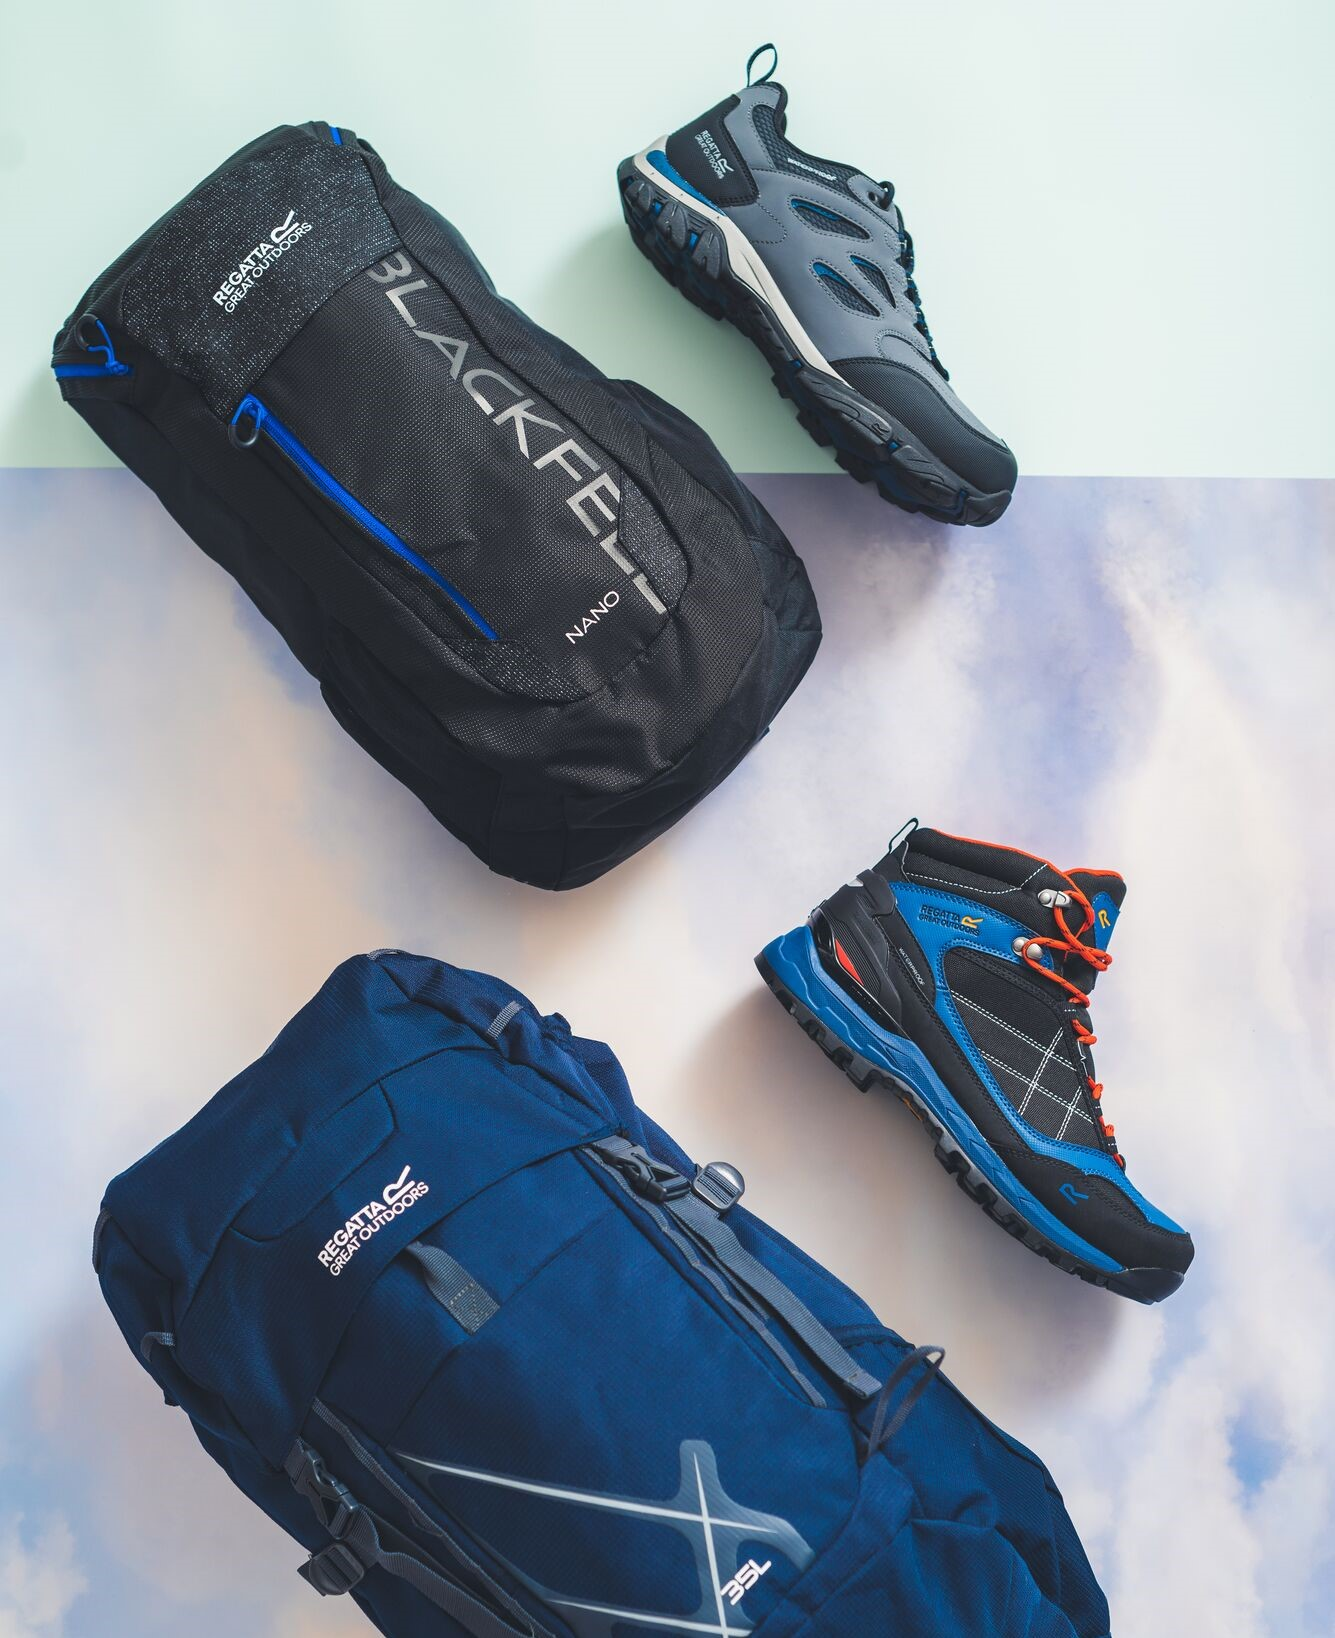 two rucksacks and two pairs of walking shoes